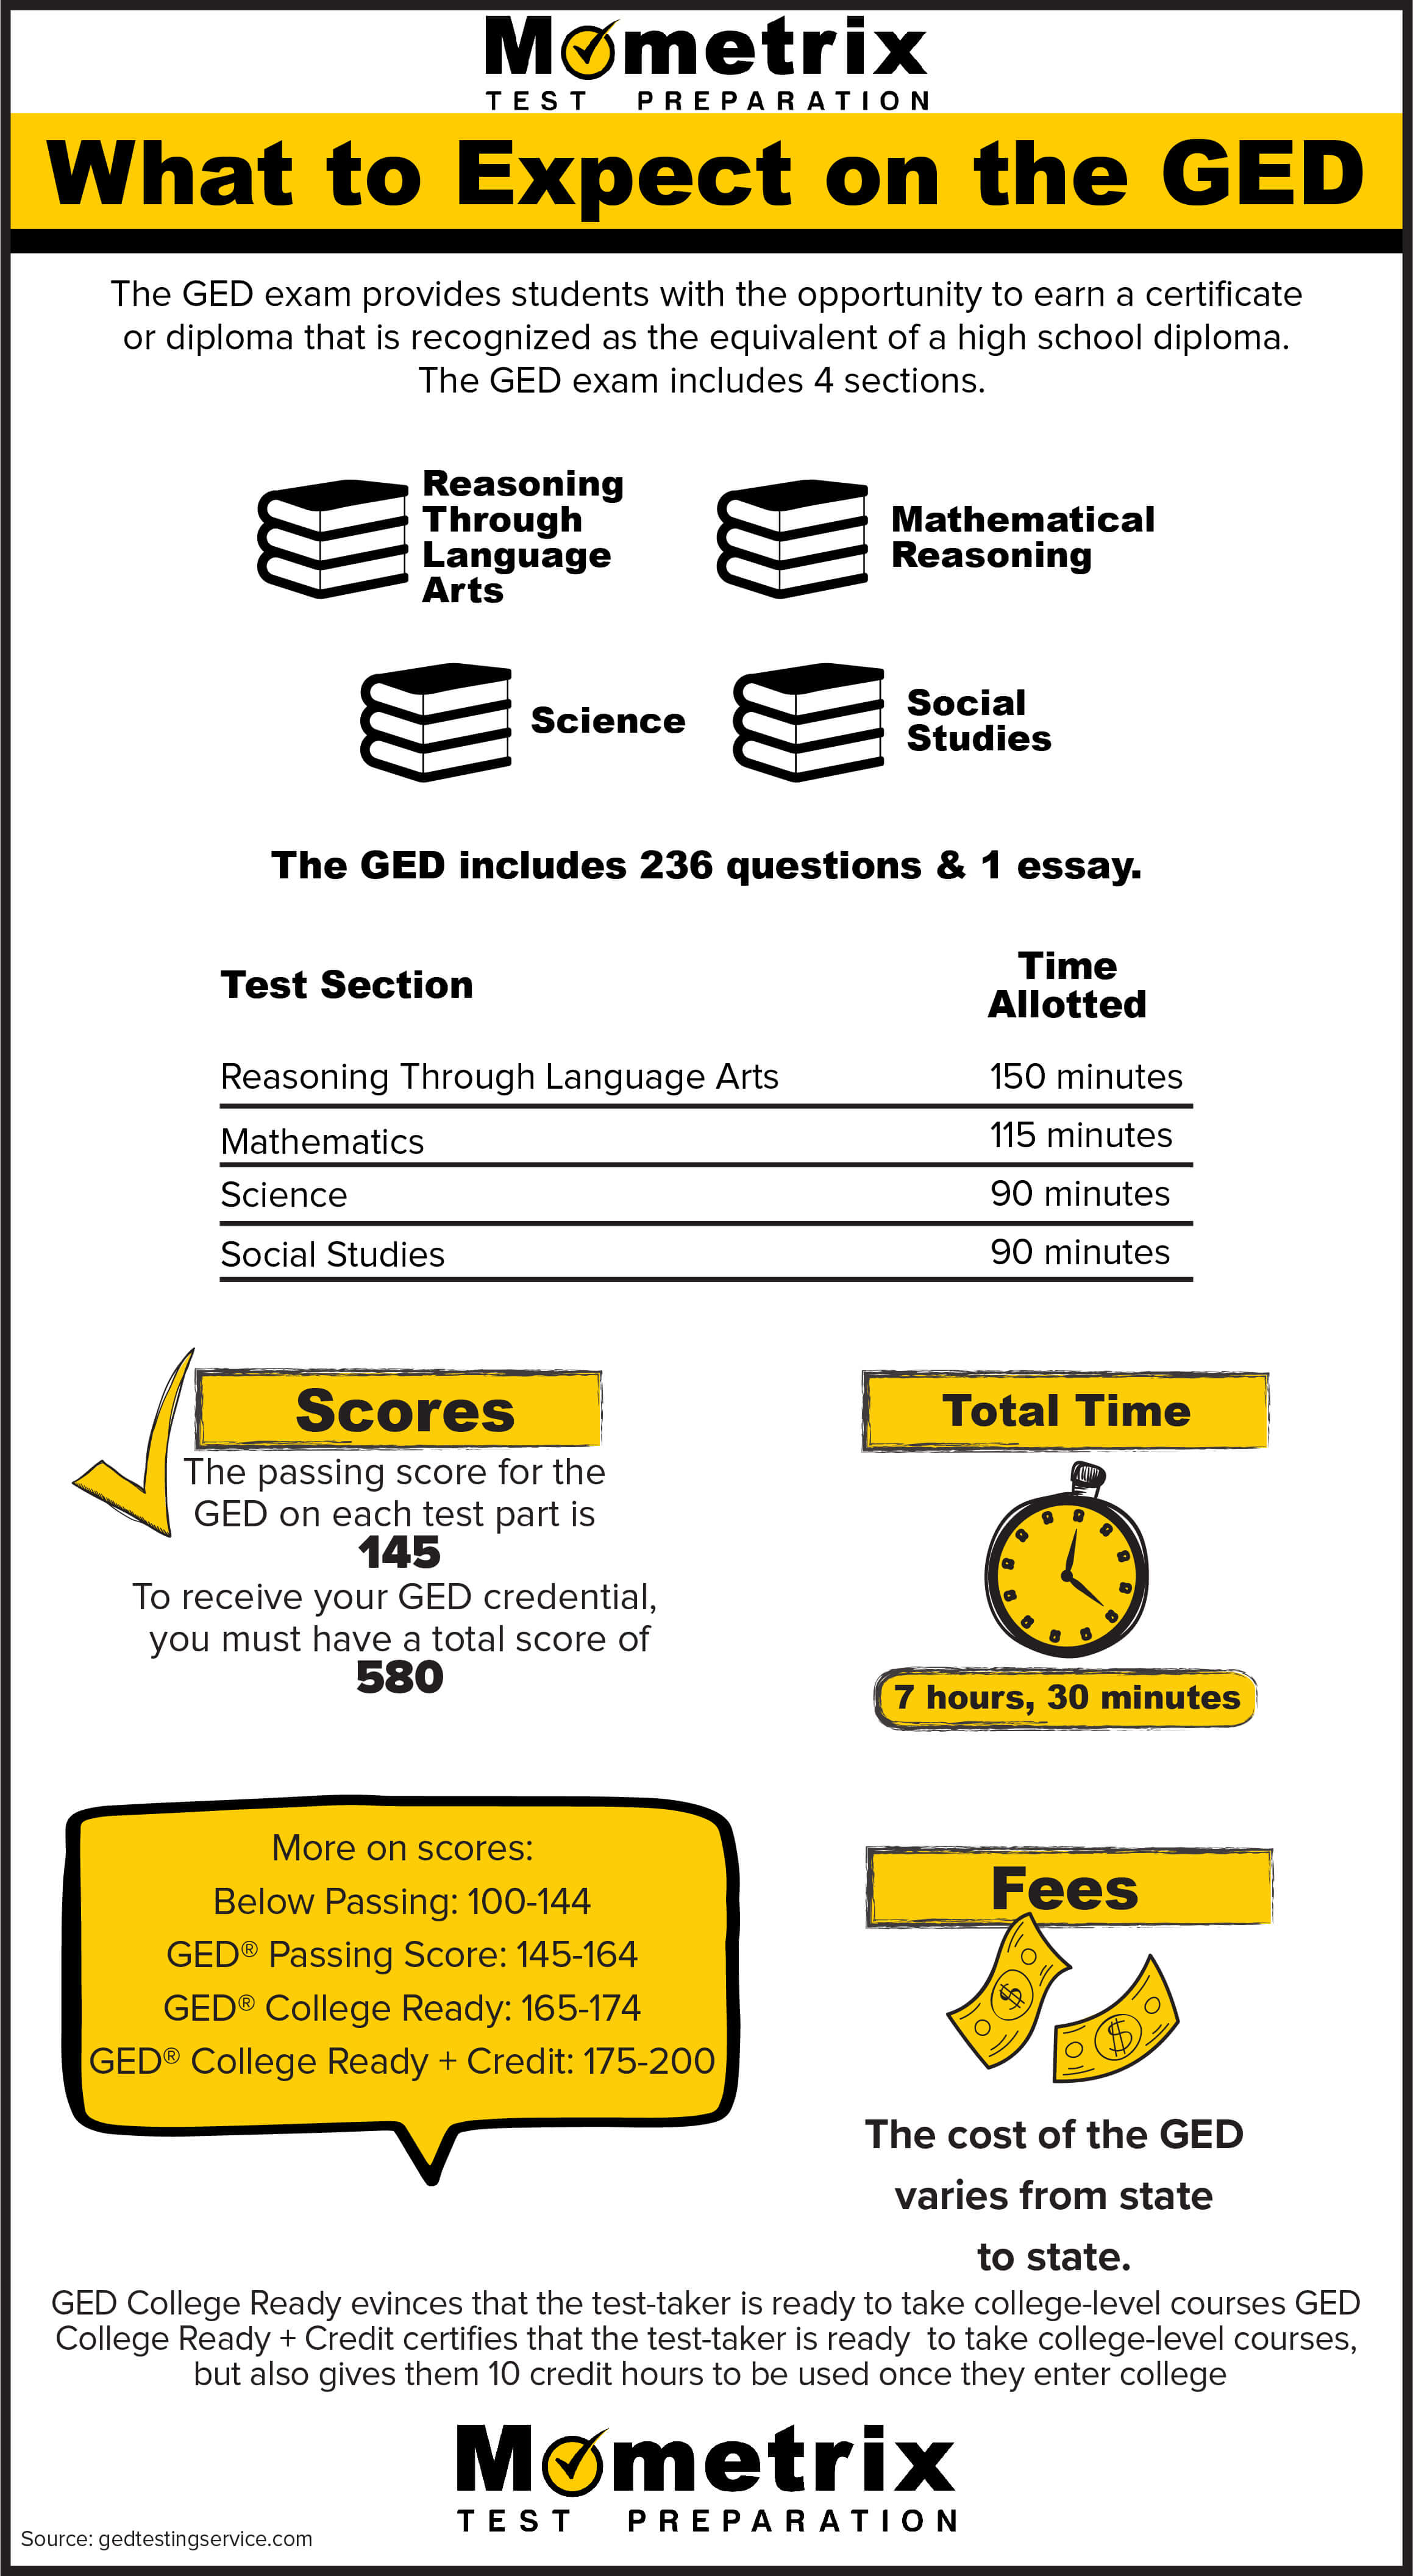 What to Expect on the GED